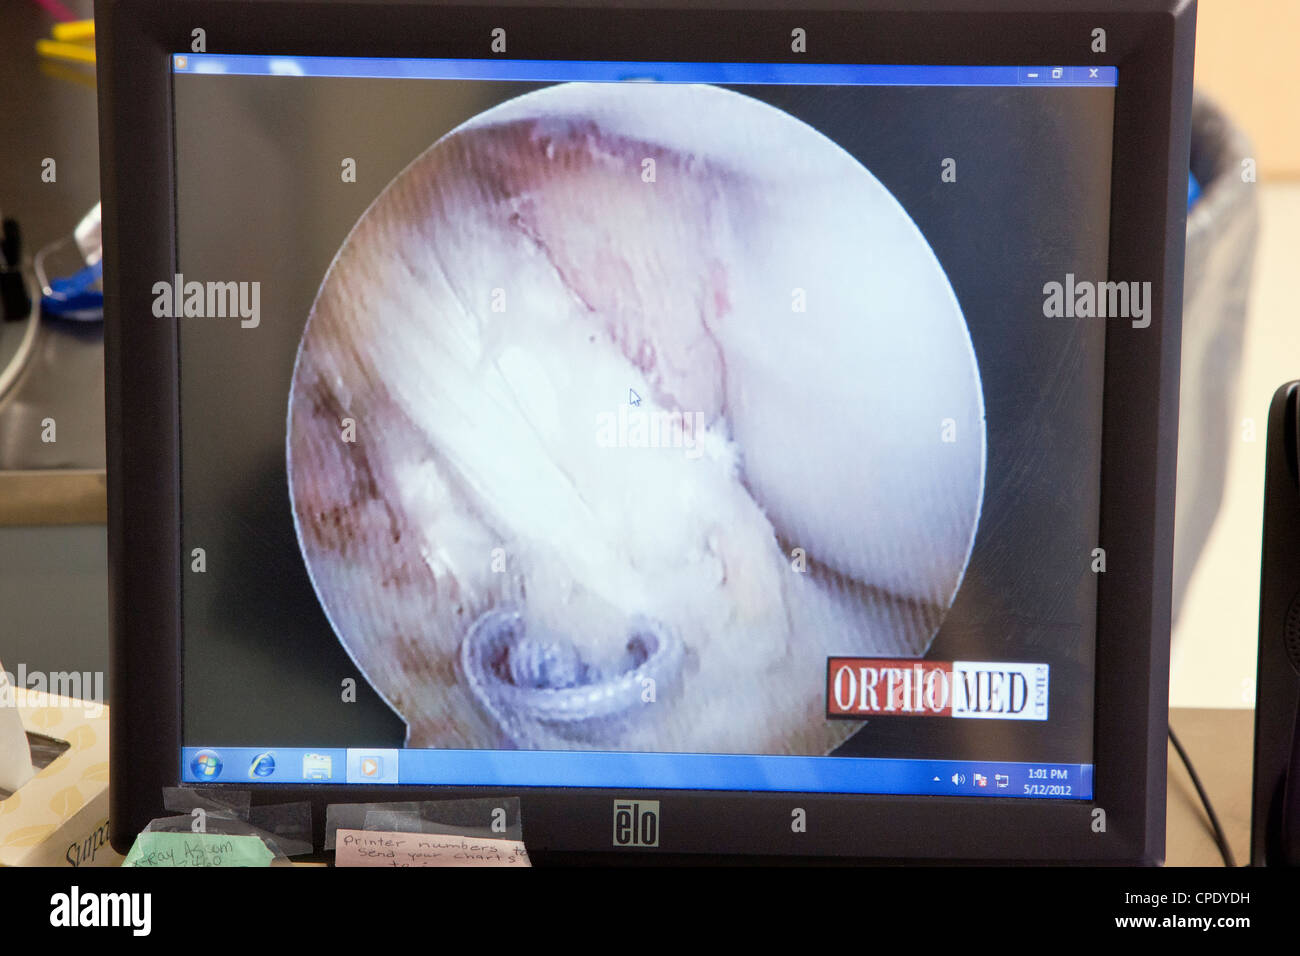 Arthroscopic knee surgery displayed on a hospital operating room computer monitor - Stock Image